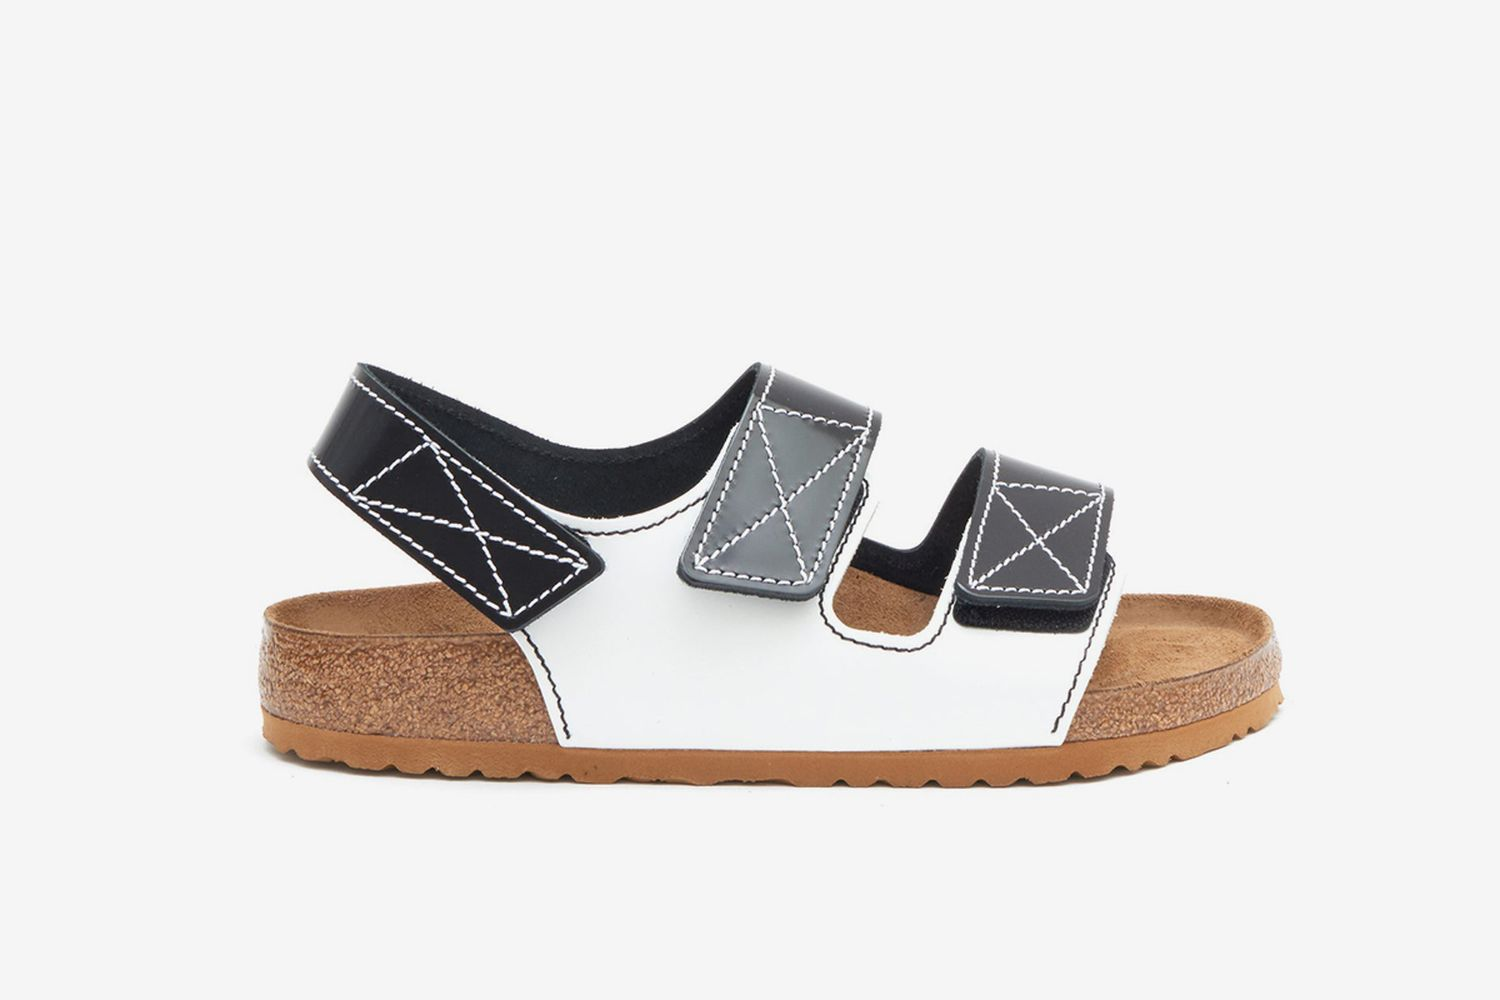 Schouler Milano Leather Sandals